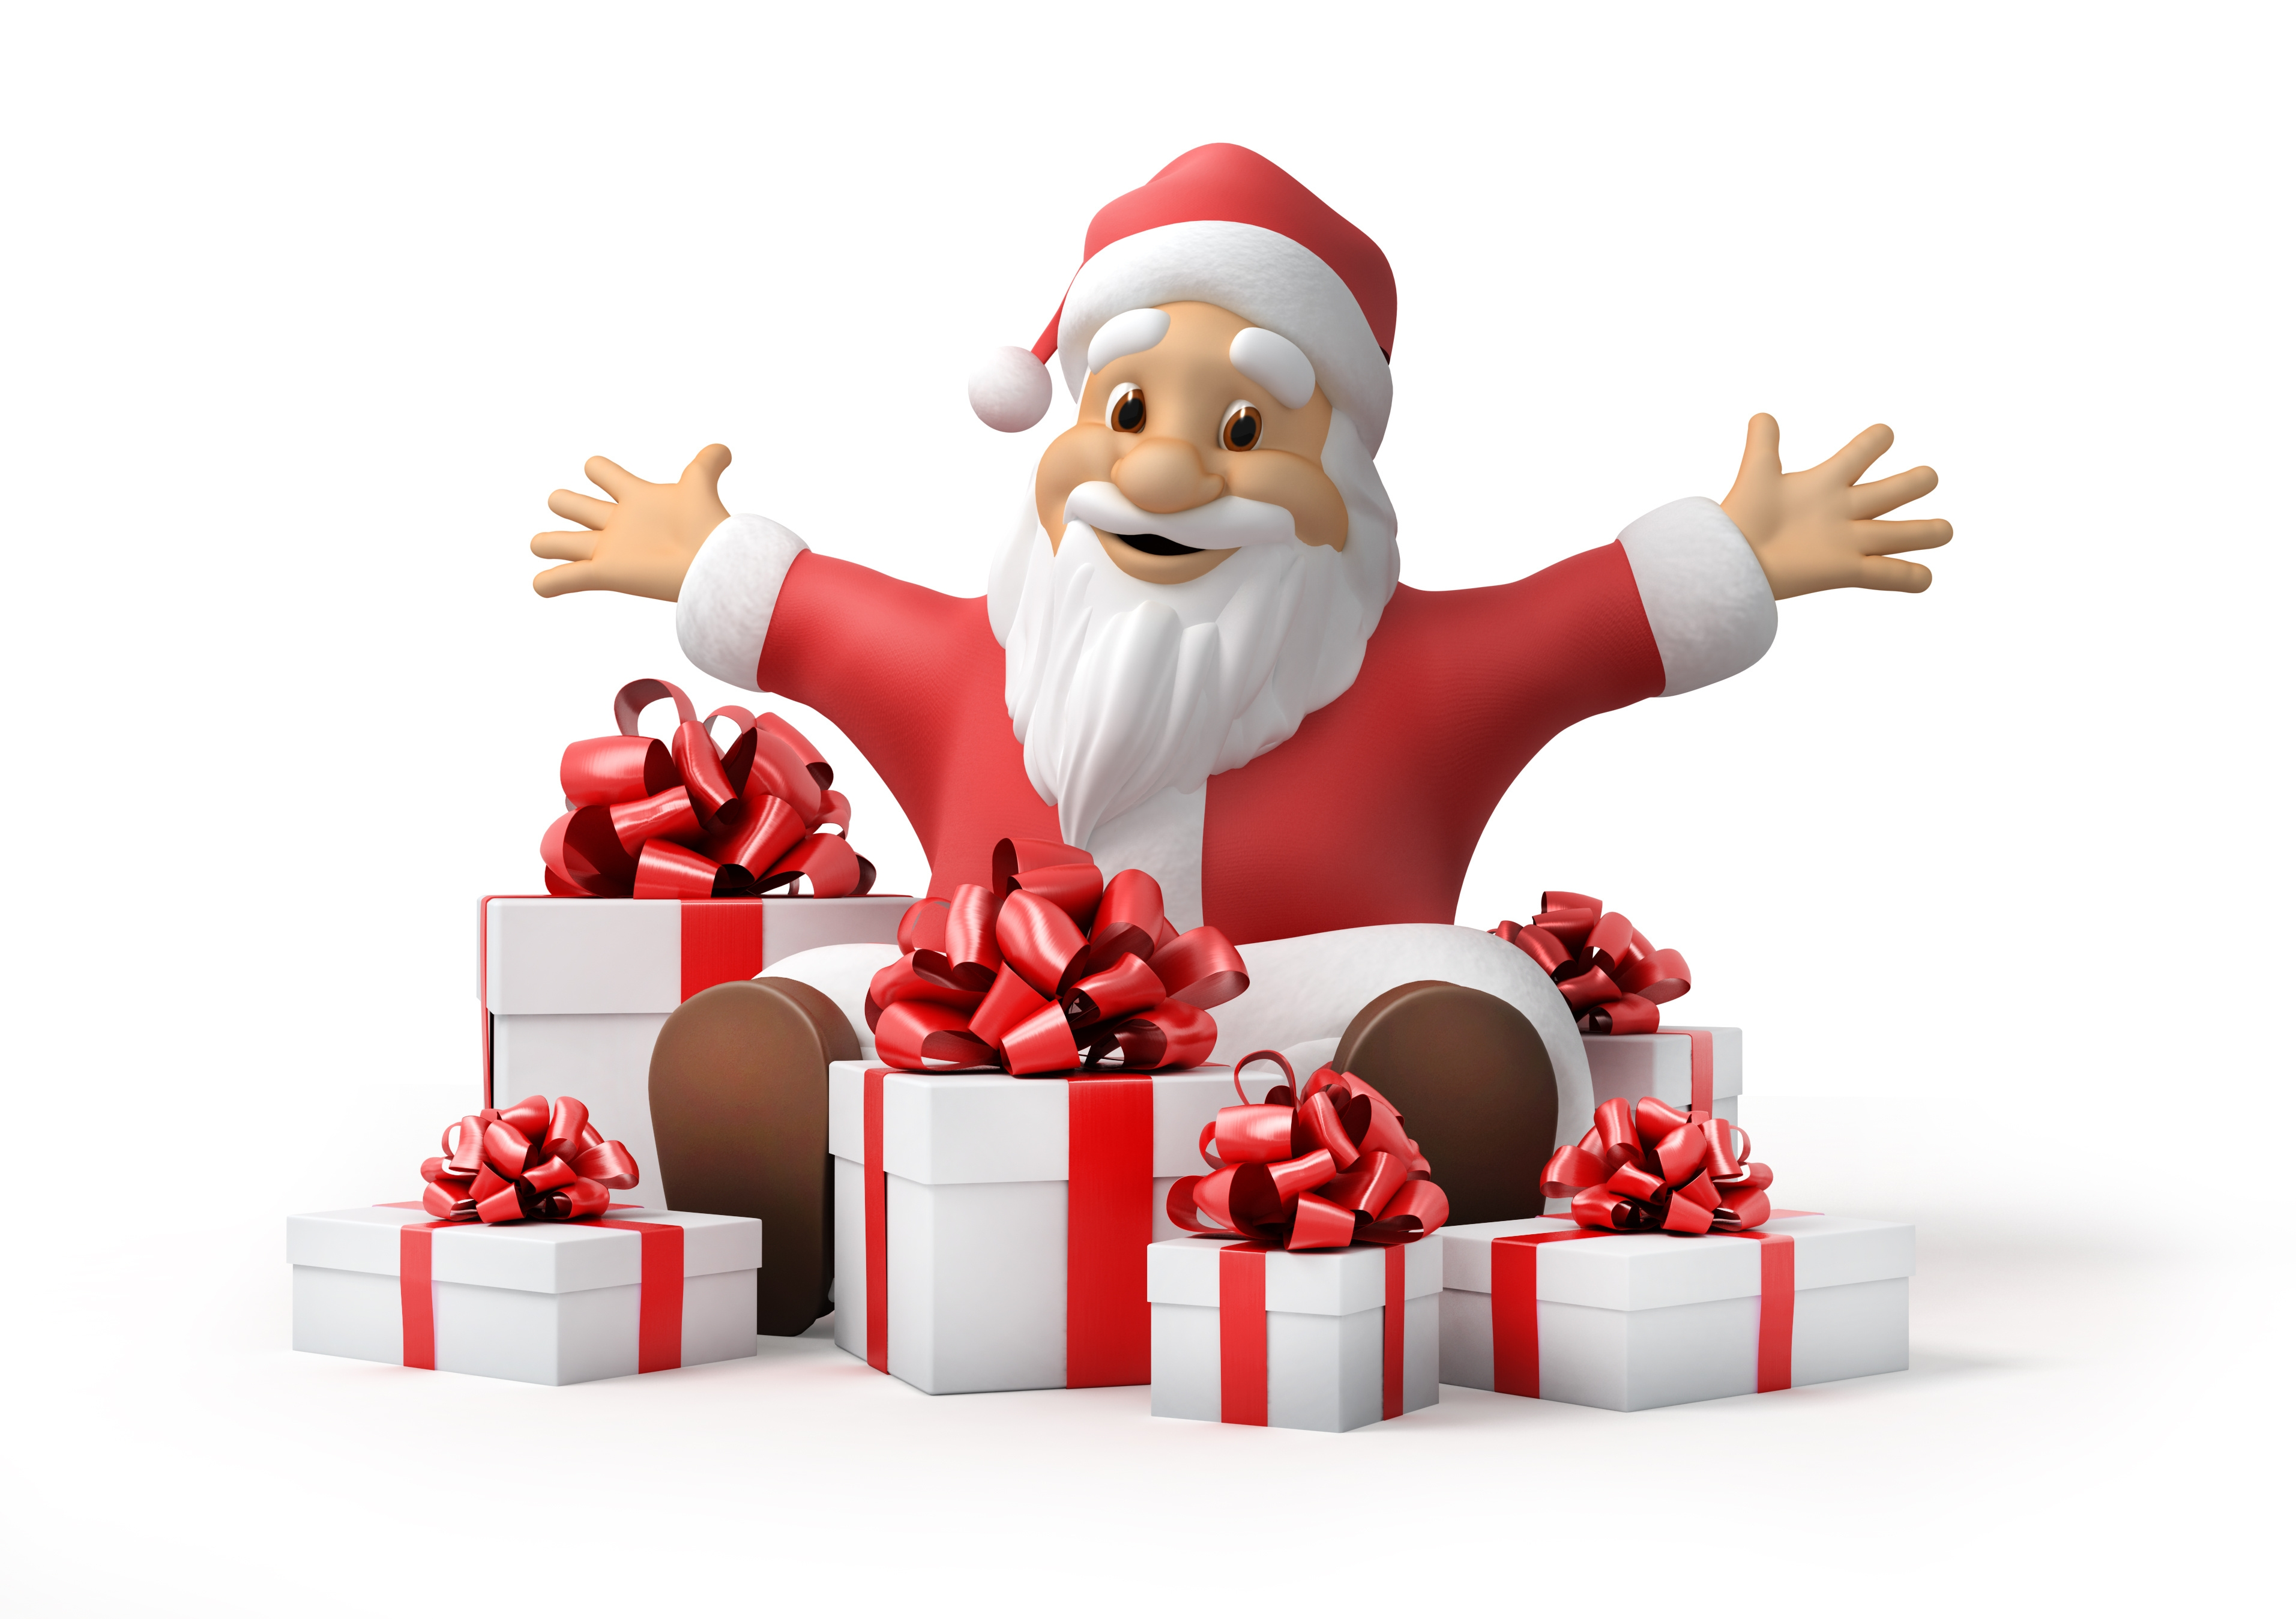 StockSubmitter|Illustrations/Clip-Art|Holidays|3D$|10|00000000000000000000000400000004000004|8$26@5001003.213_5010010.537@166$155$@Art-Illustration.3D$Holidays.Miscellaneous$@$@21$20$@$@$@$@349$26@$@$@$@$@$@$@$@$@43$68@$@$@0x6x202.15$0x6x192.15$0x6x199.15@Art-Illustration.3D$Holidays.Miscellaneous$@100$97$@8$26@$@$@$@$@$@$@520.0$158.0$@$@$@$@$@$@$||santa$Santa Claus^Fictional Character$claus$Santa Claus^Fictional Character$Xmas$Christmas^National Holiday$santa-claus$santa-claus^$christmas$Christmas^National Holiday$merry$Humor^$show$Showing^Moving Activity__$celebration$Celebration^$hat$Hat^Headwear$hand$Human Hand^The Human Body_$saint$Saint^Human Role$look$Looking^Using Senses$looking$Looking^Using Senses$happy$Happiness^_$new year$New Year^Holiday_New Year's Eve^Holiday_New Year's Day^Holiday_$3d$Three-dimensional Shape^Geometric Shape_$abstract$Abstract^Composition$paper$Paper^Material__$list$List^Document$white$White^Descriptive Color_$blank$Blank^Physical Description_$hold$Holding^Touching$background$Backgrounds^$gift$Gift^Man Made Object$isolated$Isolated^Cut Out_$illustration$Illustration and Painting^Image$red$Red^Descriptive Color$season$Season^Setting$winter$Winter^Season$work-path$Work-path^$ad$Billboard^Commercial Sign_$finger$Human Finger^The Human Body__$beard$Beard^Facial Hair$sheet$Sheet^Bedding|$$0$0$0||00000000000000000000000000000000000000|